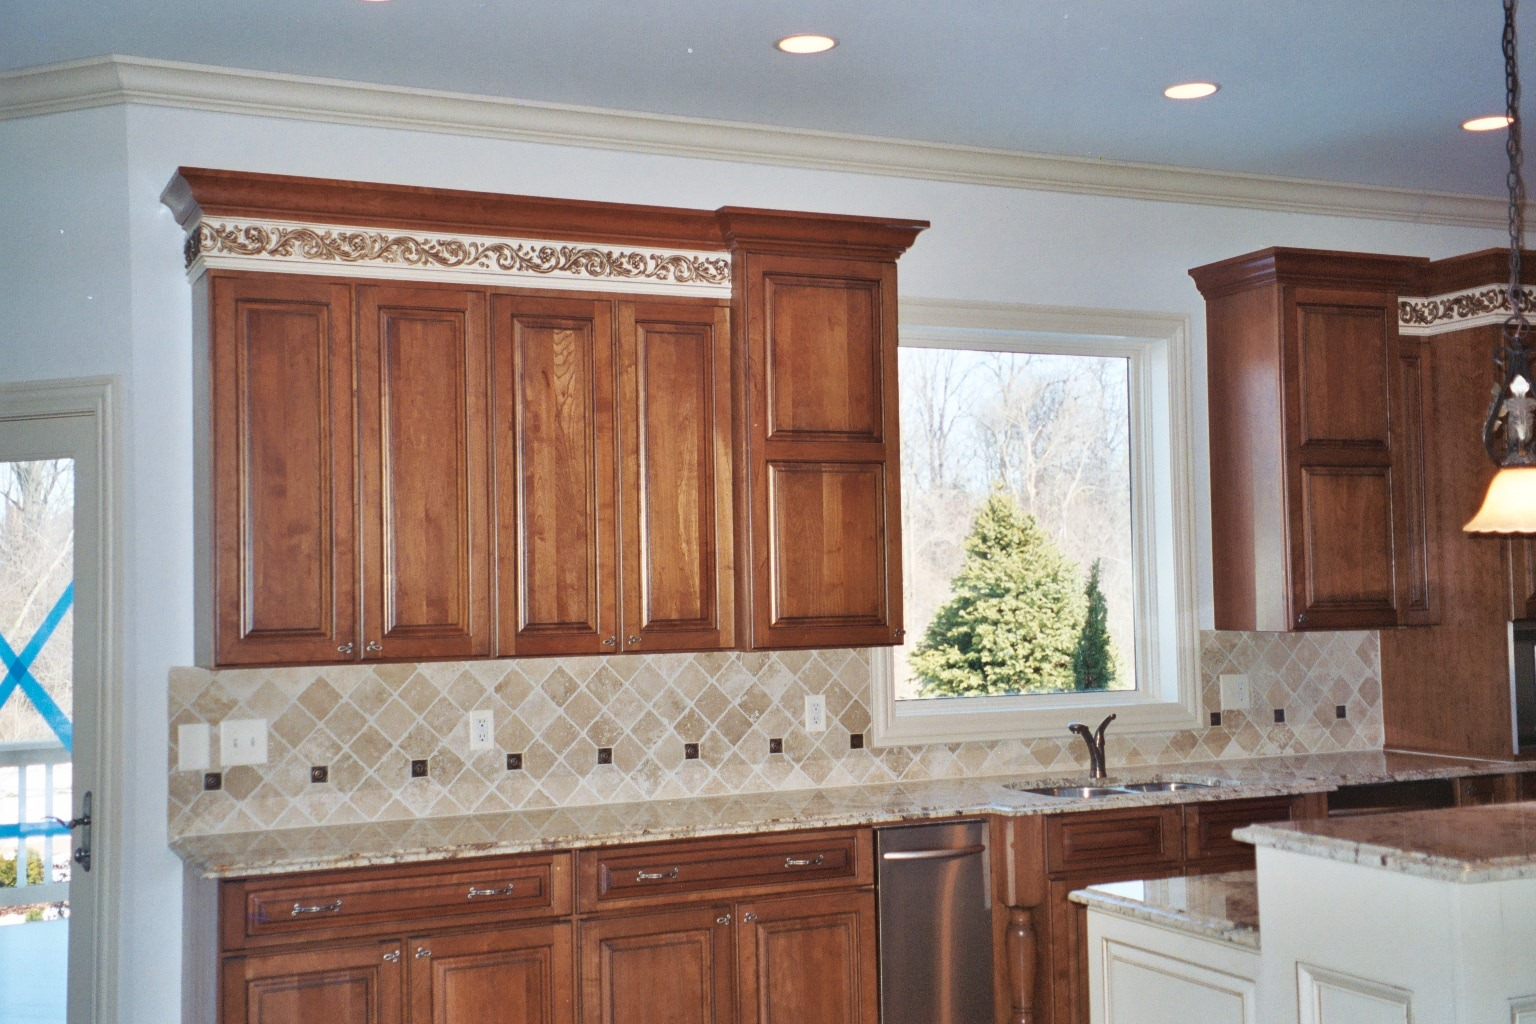 Natural Stone Backsplash Tile